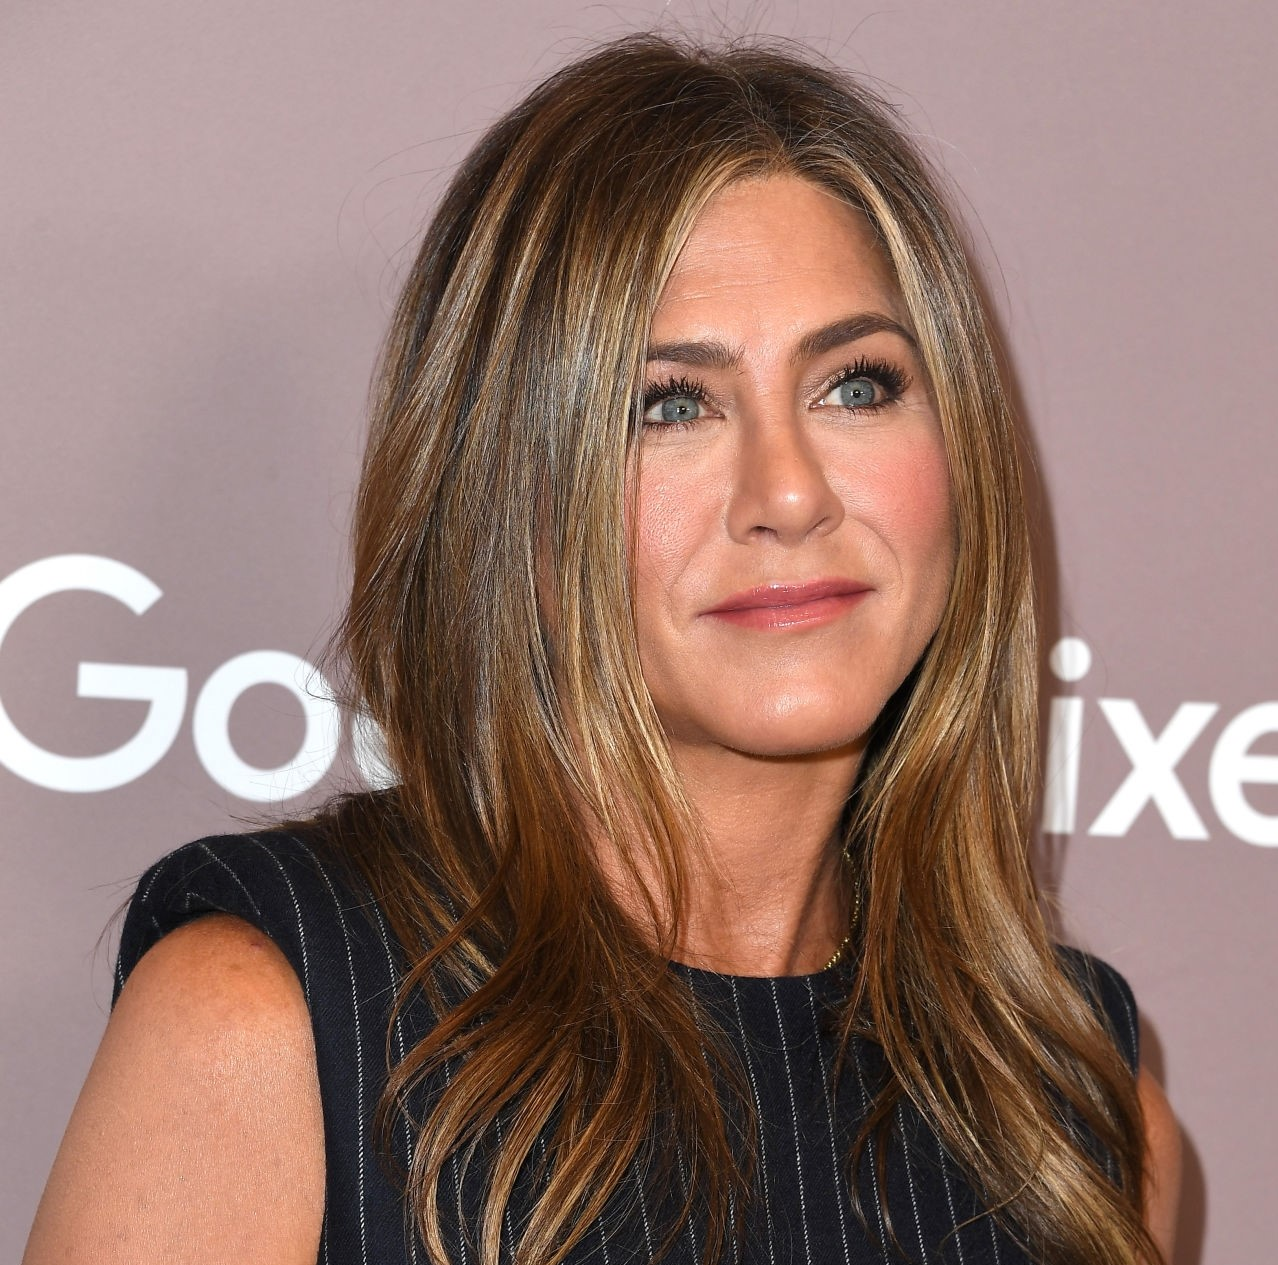 Jennifer Anniston hits 1M fan following on her newly created Insta account